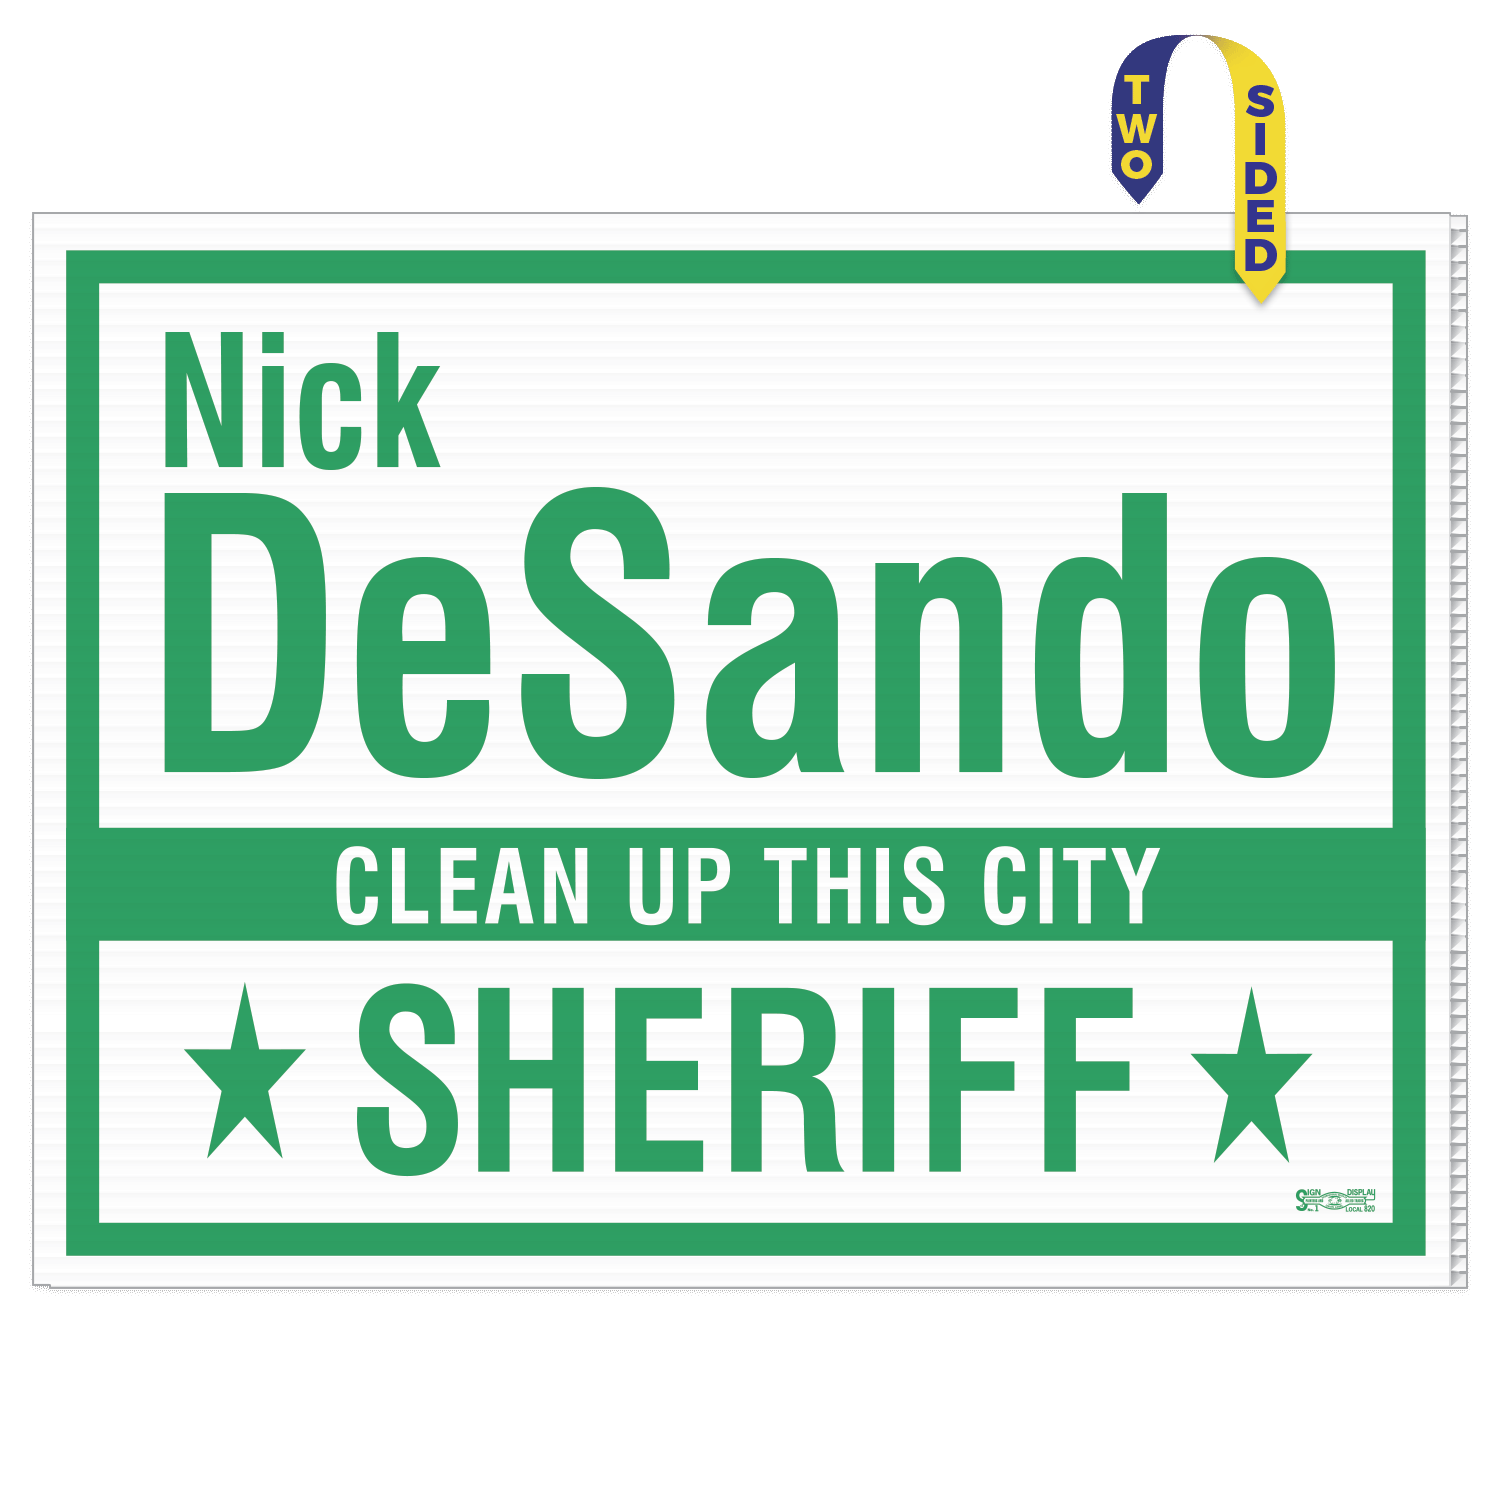 https://www.sswprinting.com/images/products_gallery_images/16032_Nick-DeSando-for-Sheriff_hi-res.png